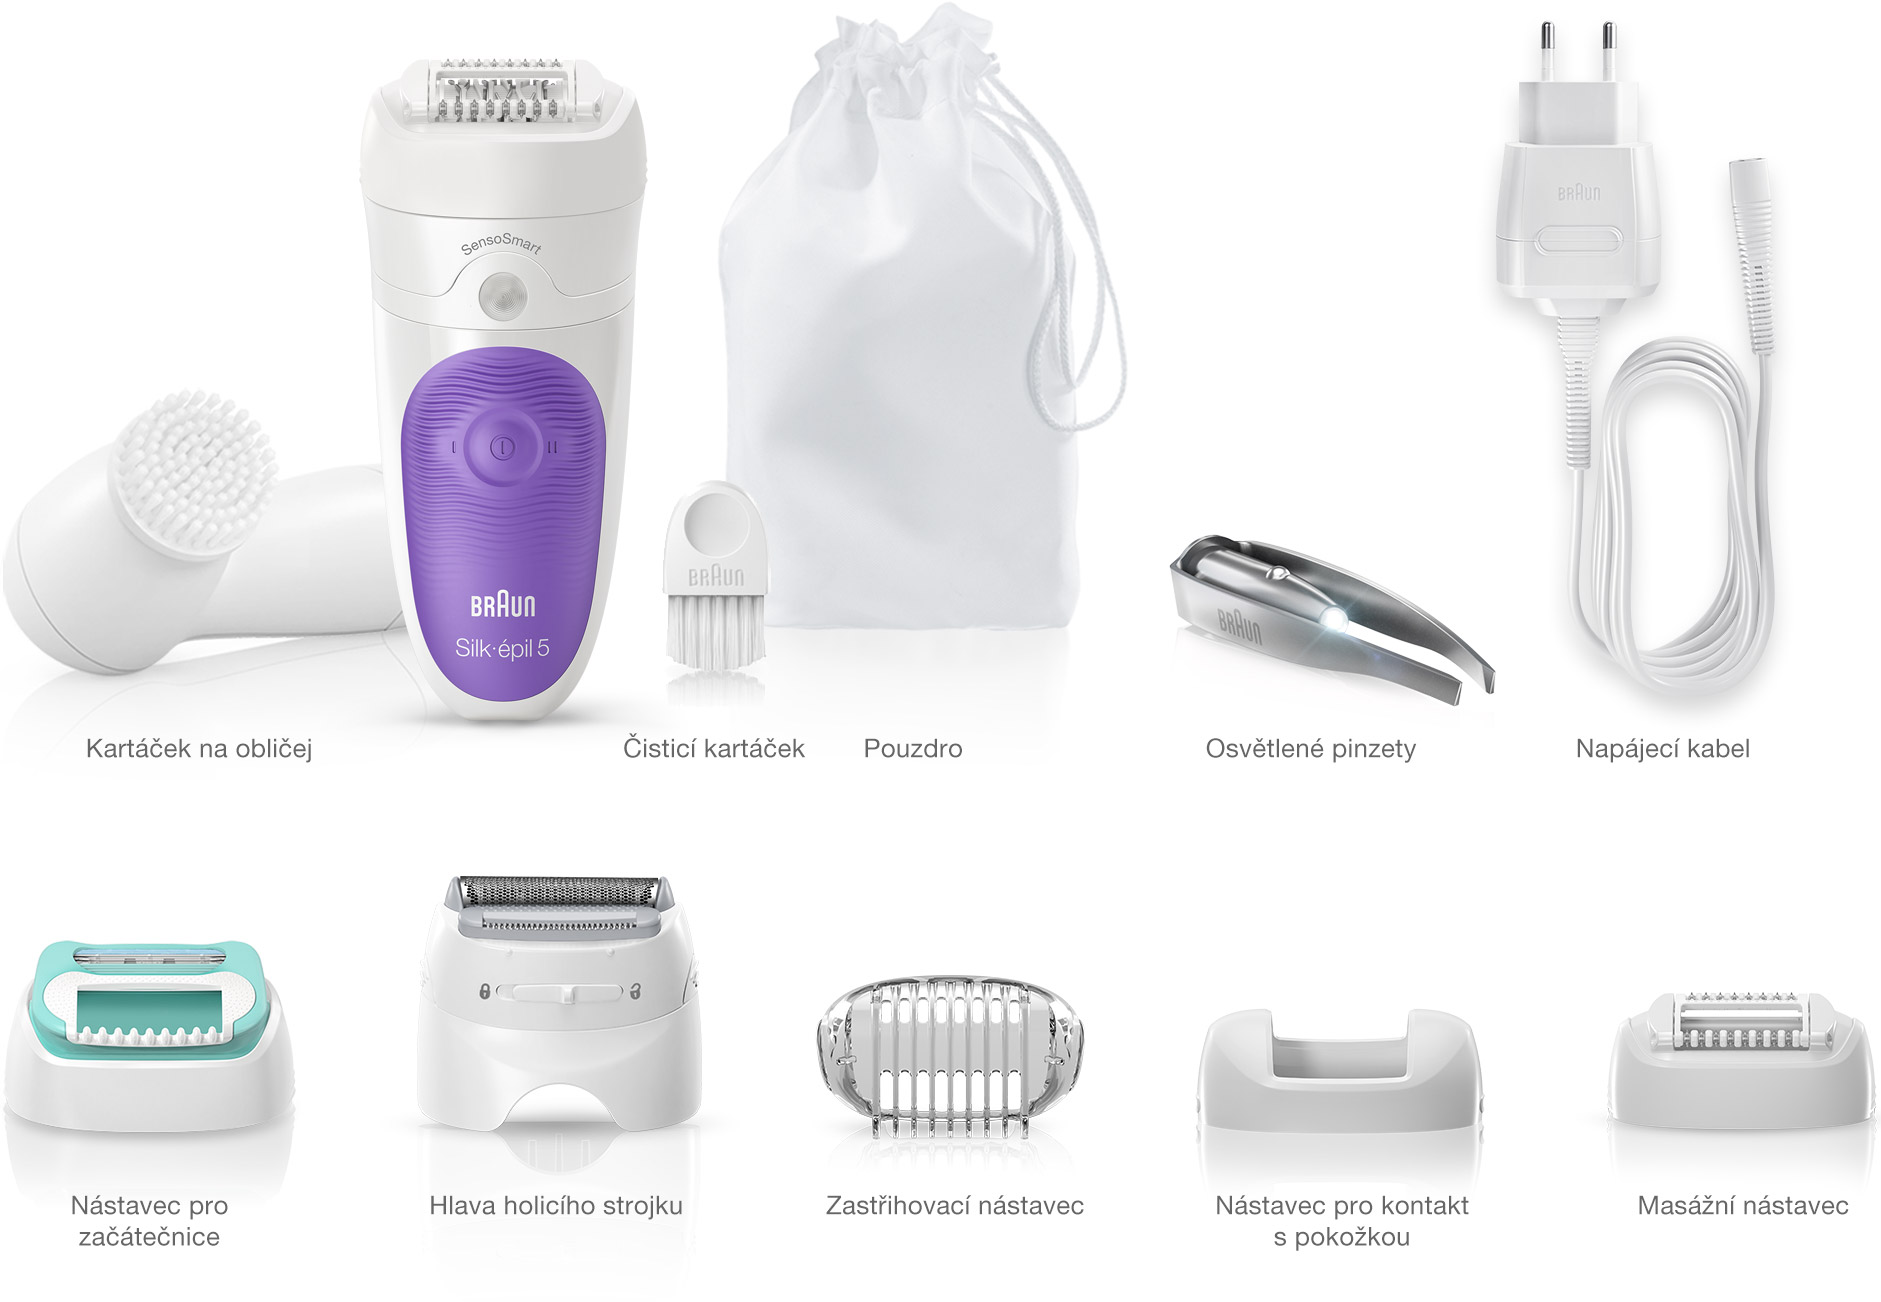 Braun Silk-épil 5 epilator – What's in the box